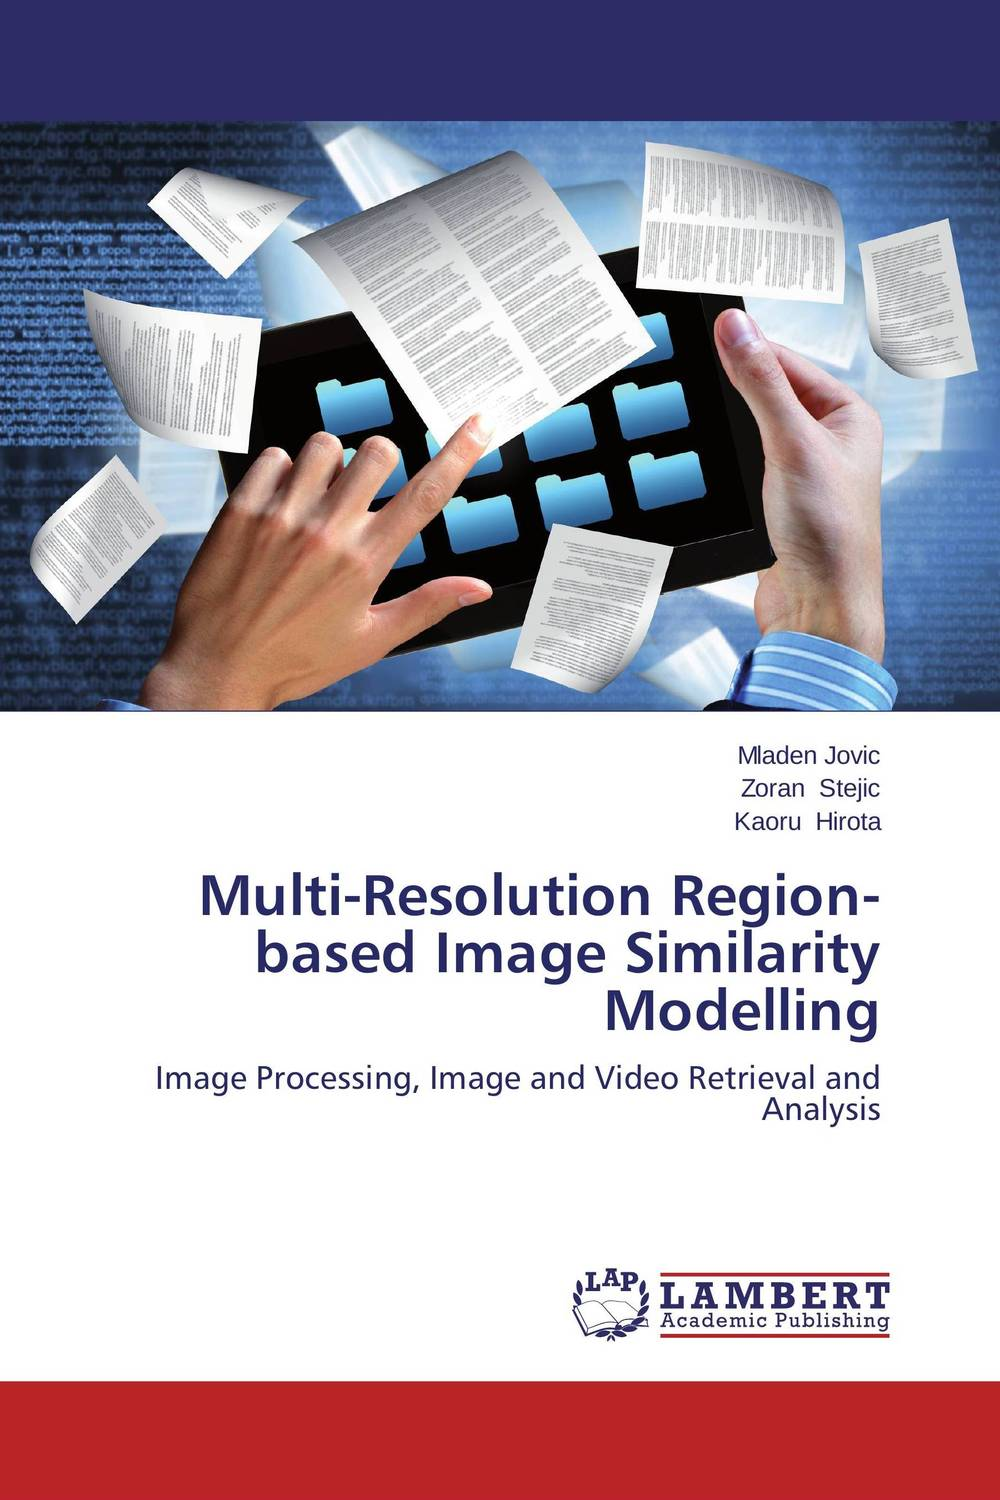 Multi-Resolution Region-based Image Similarity Modelling cluster based data labeling for categorical data